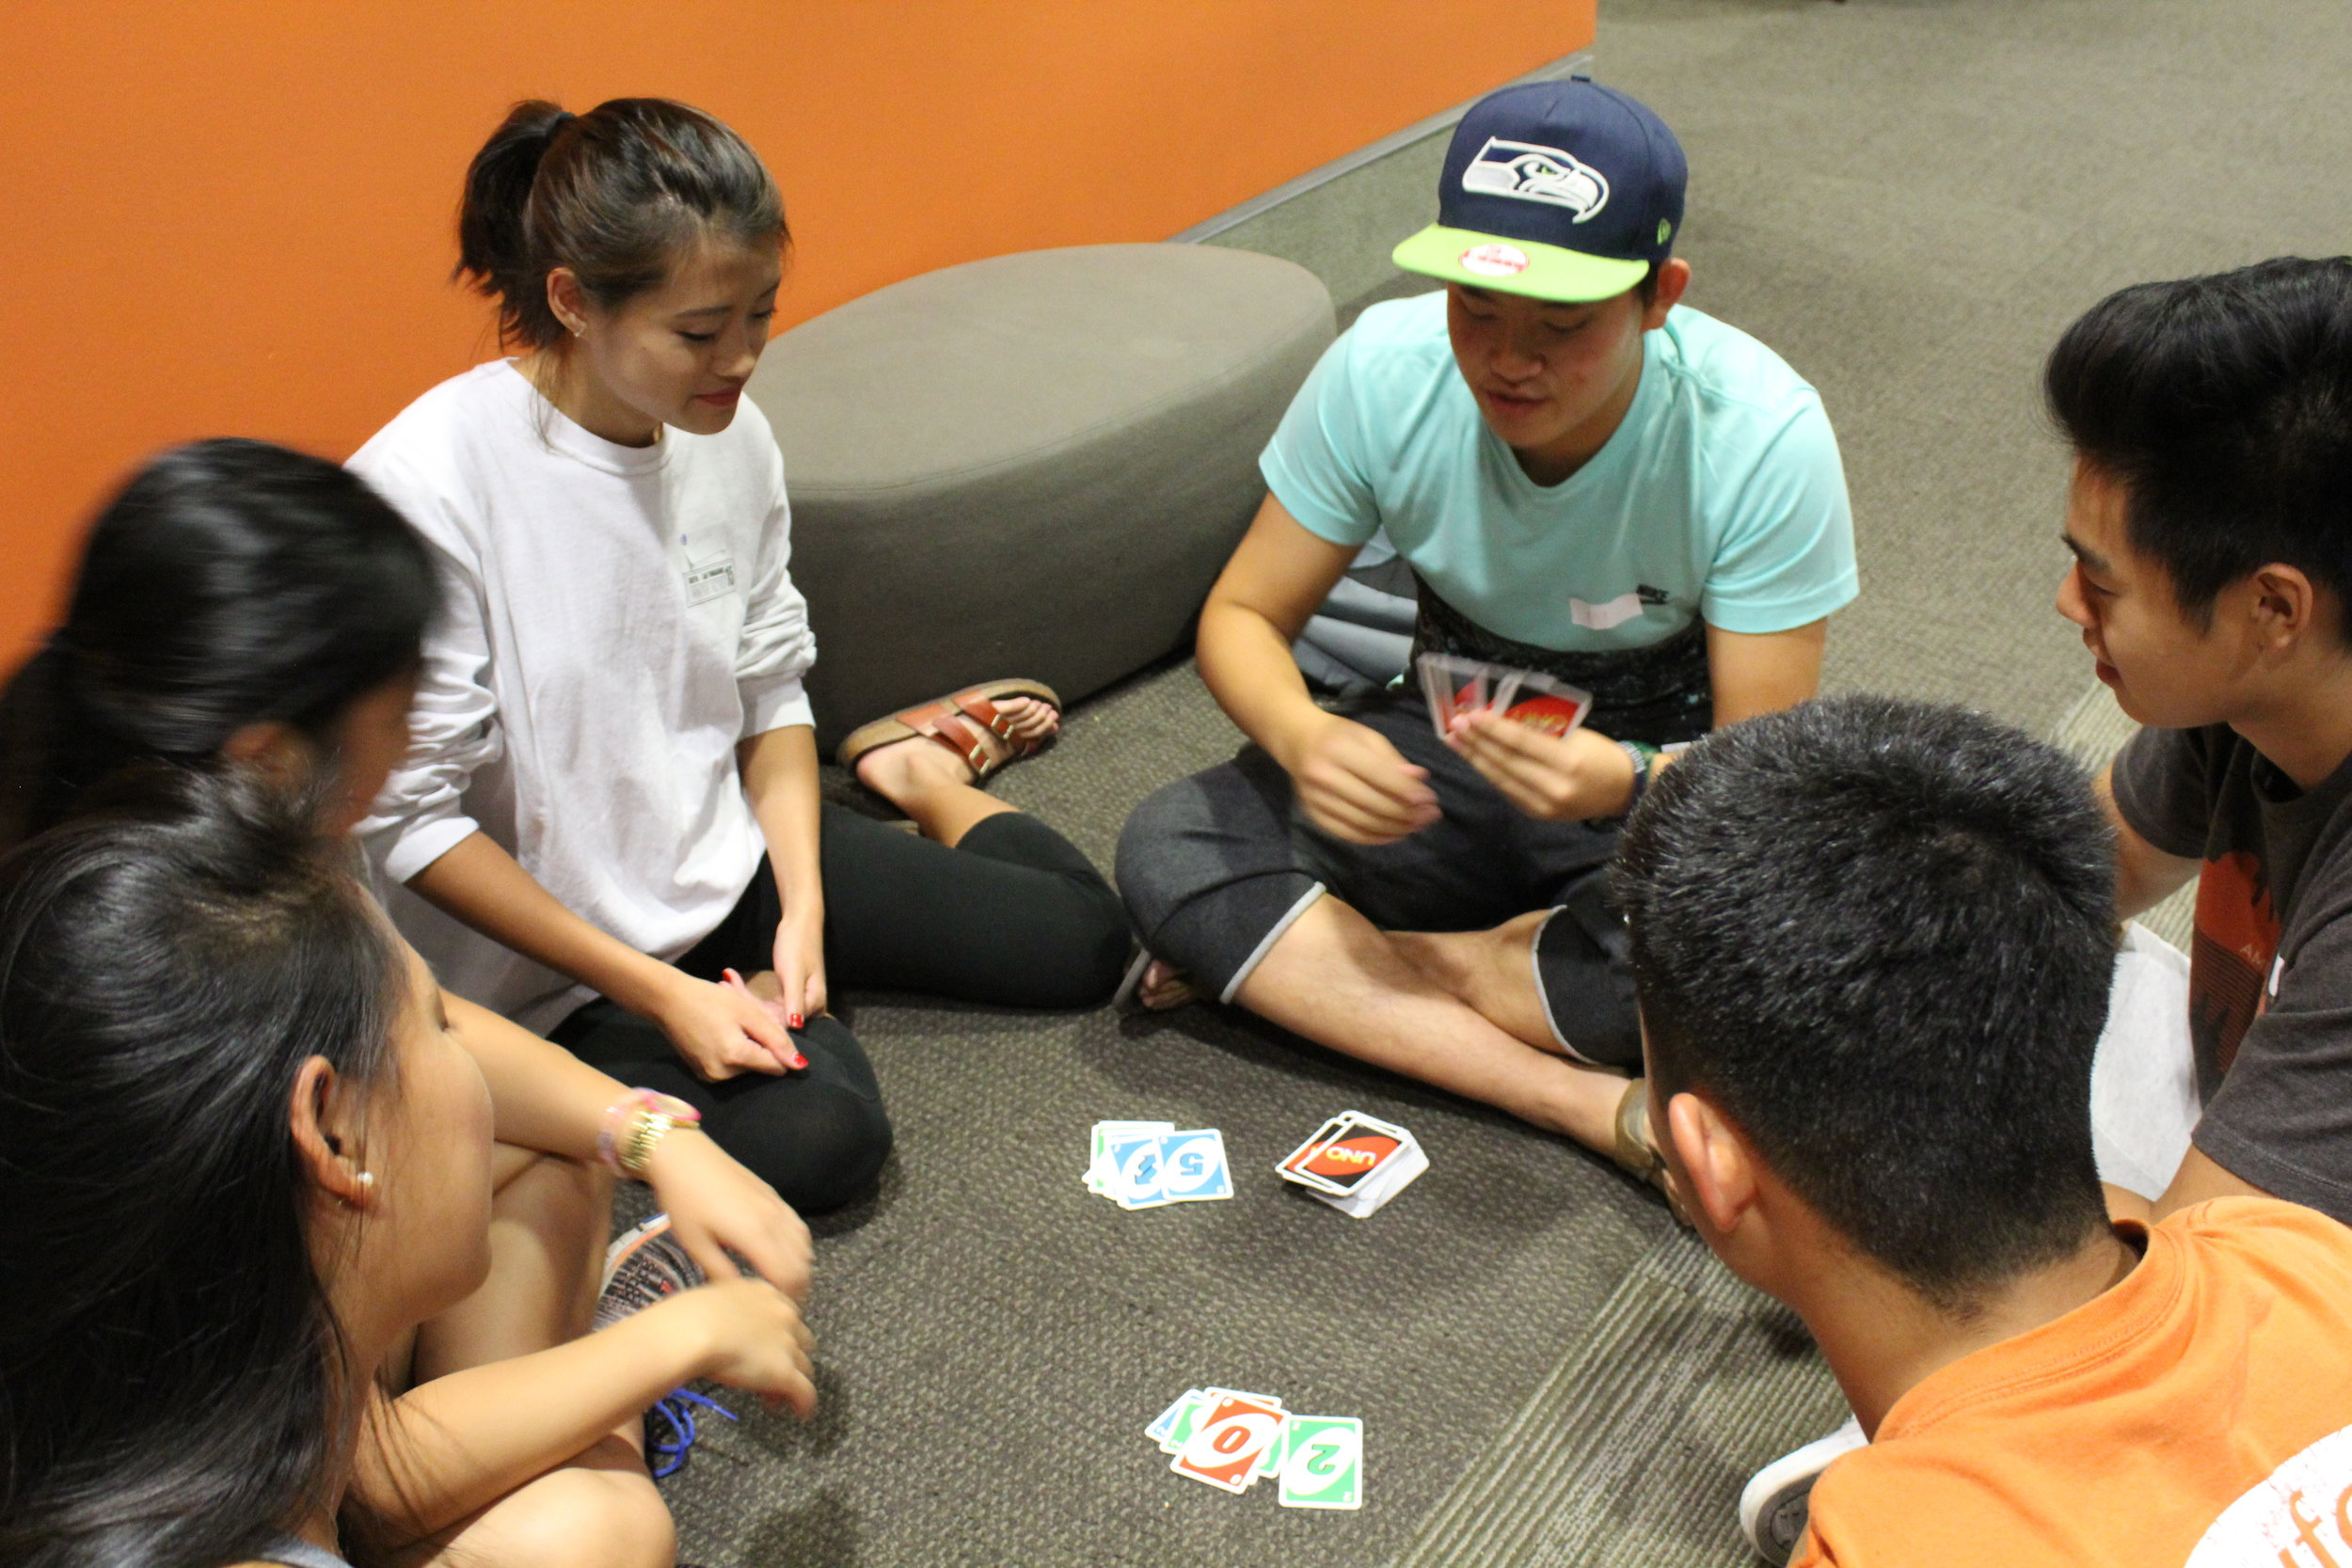 Game Night on Campus - Get to know us as we play board games, card games, group games. This is one of the best ways to hangout with AACM members as we hear about your stories.08/30 Thursday - Location: SAC Black Box Theater at 8-10:30pm